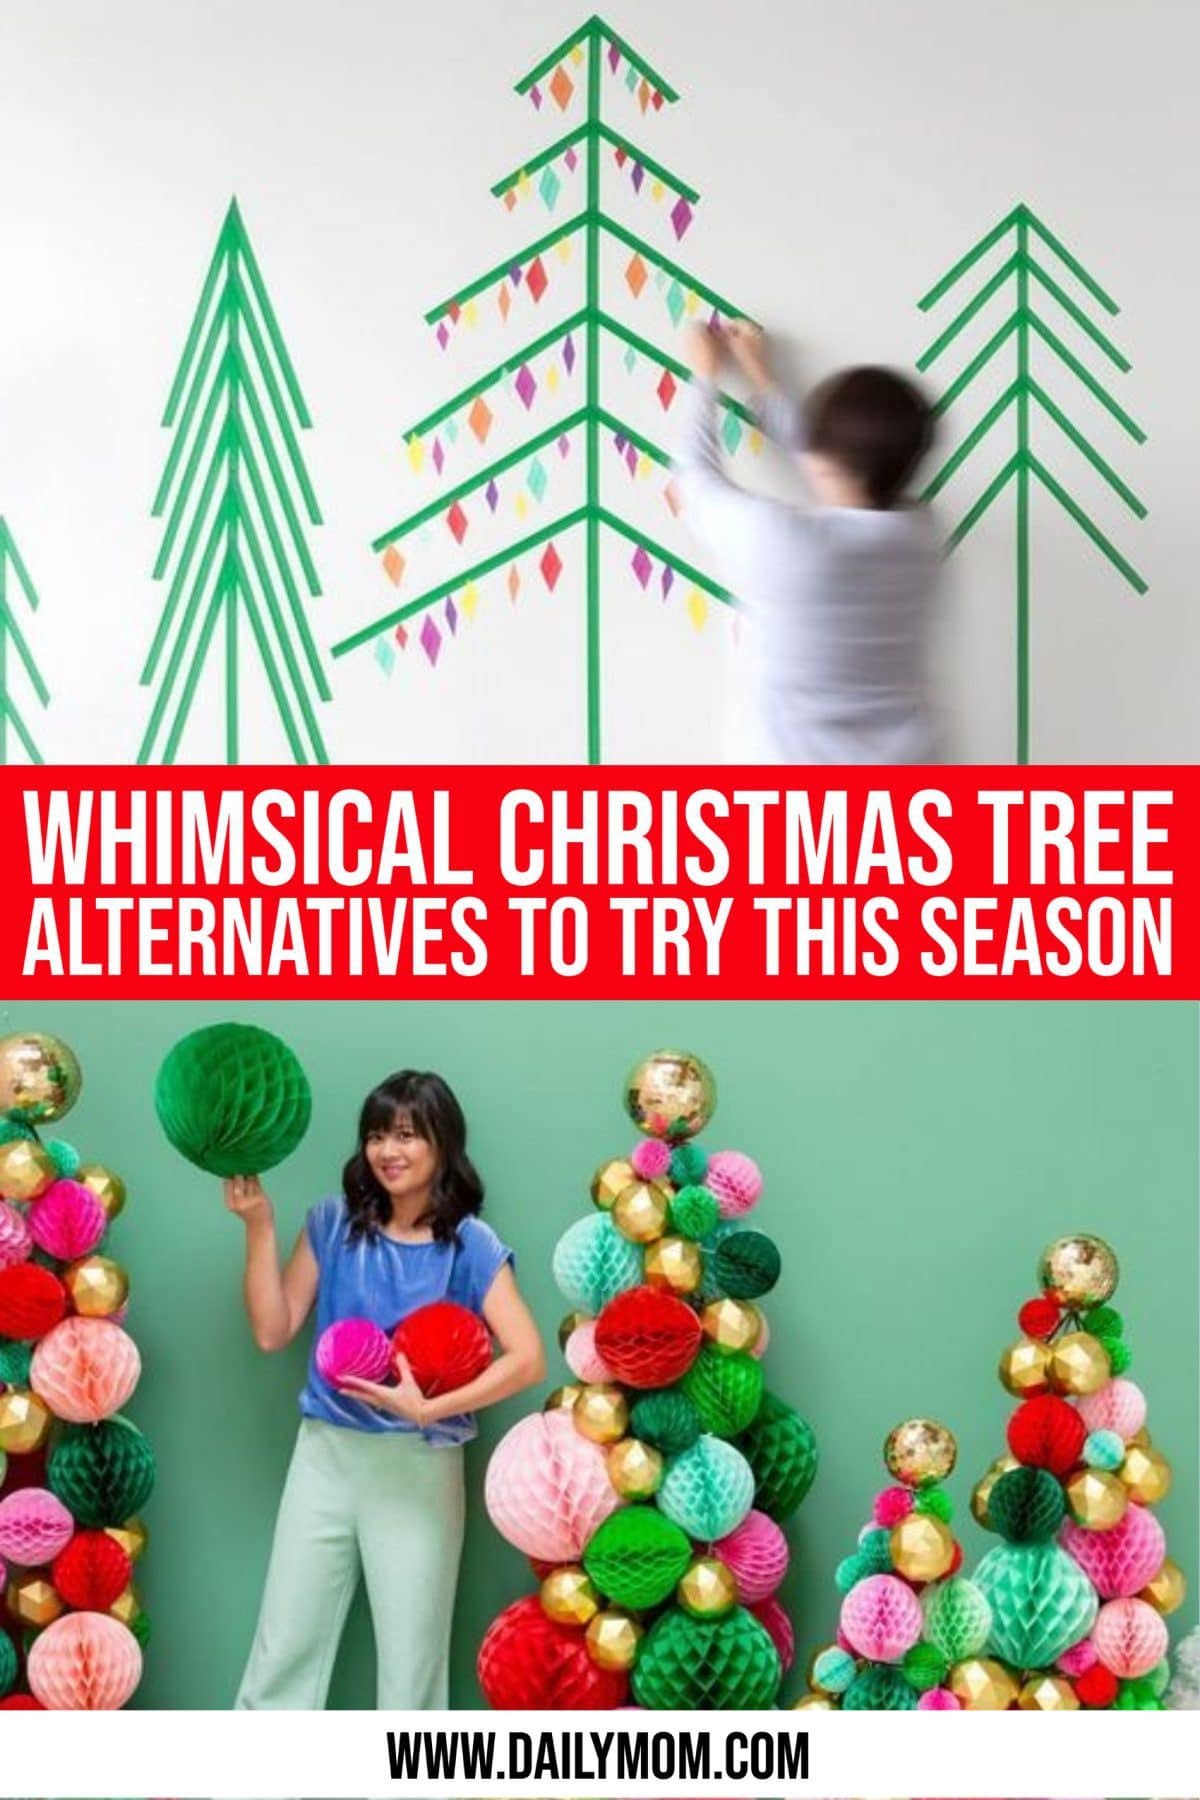 11 Whimsical Christmas Tree Alternatives To Try This Season